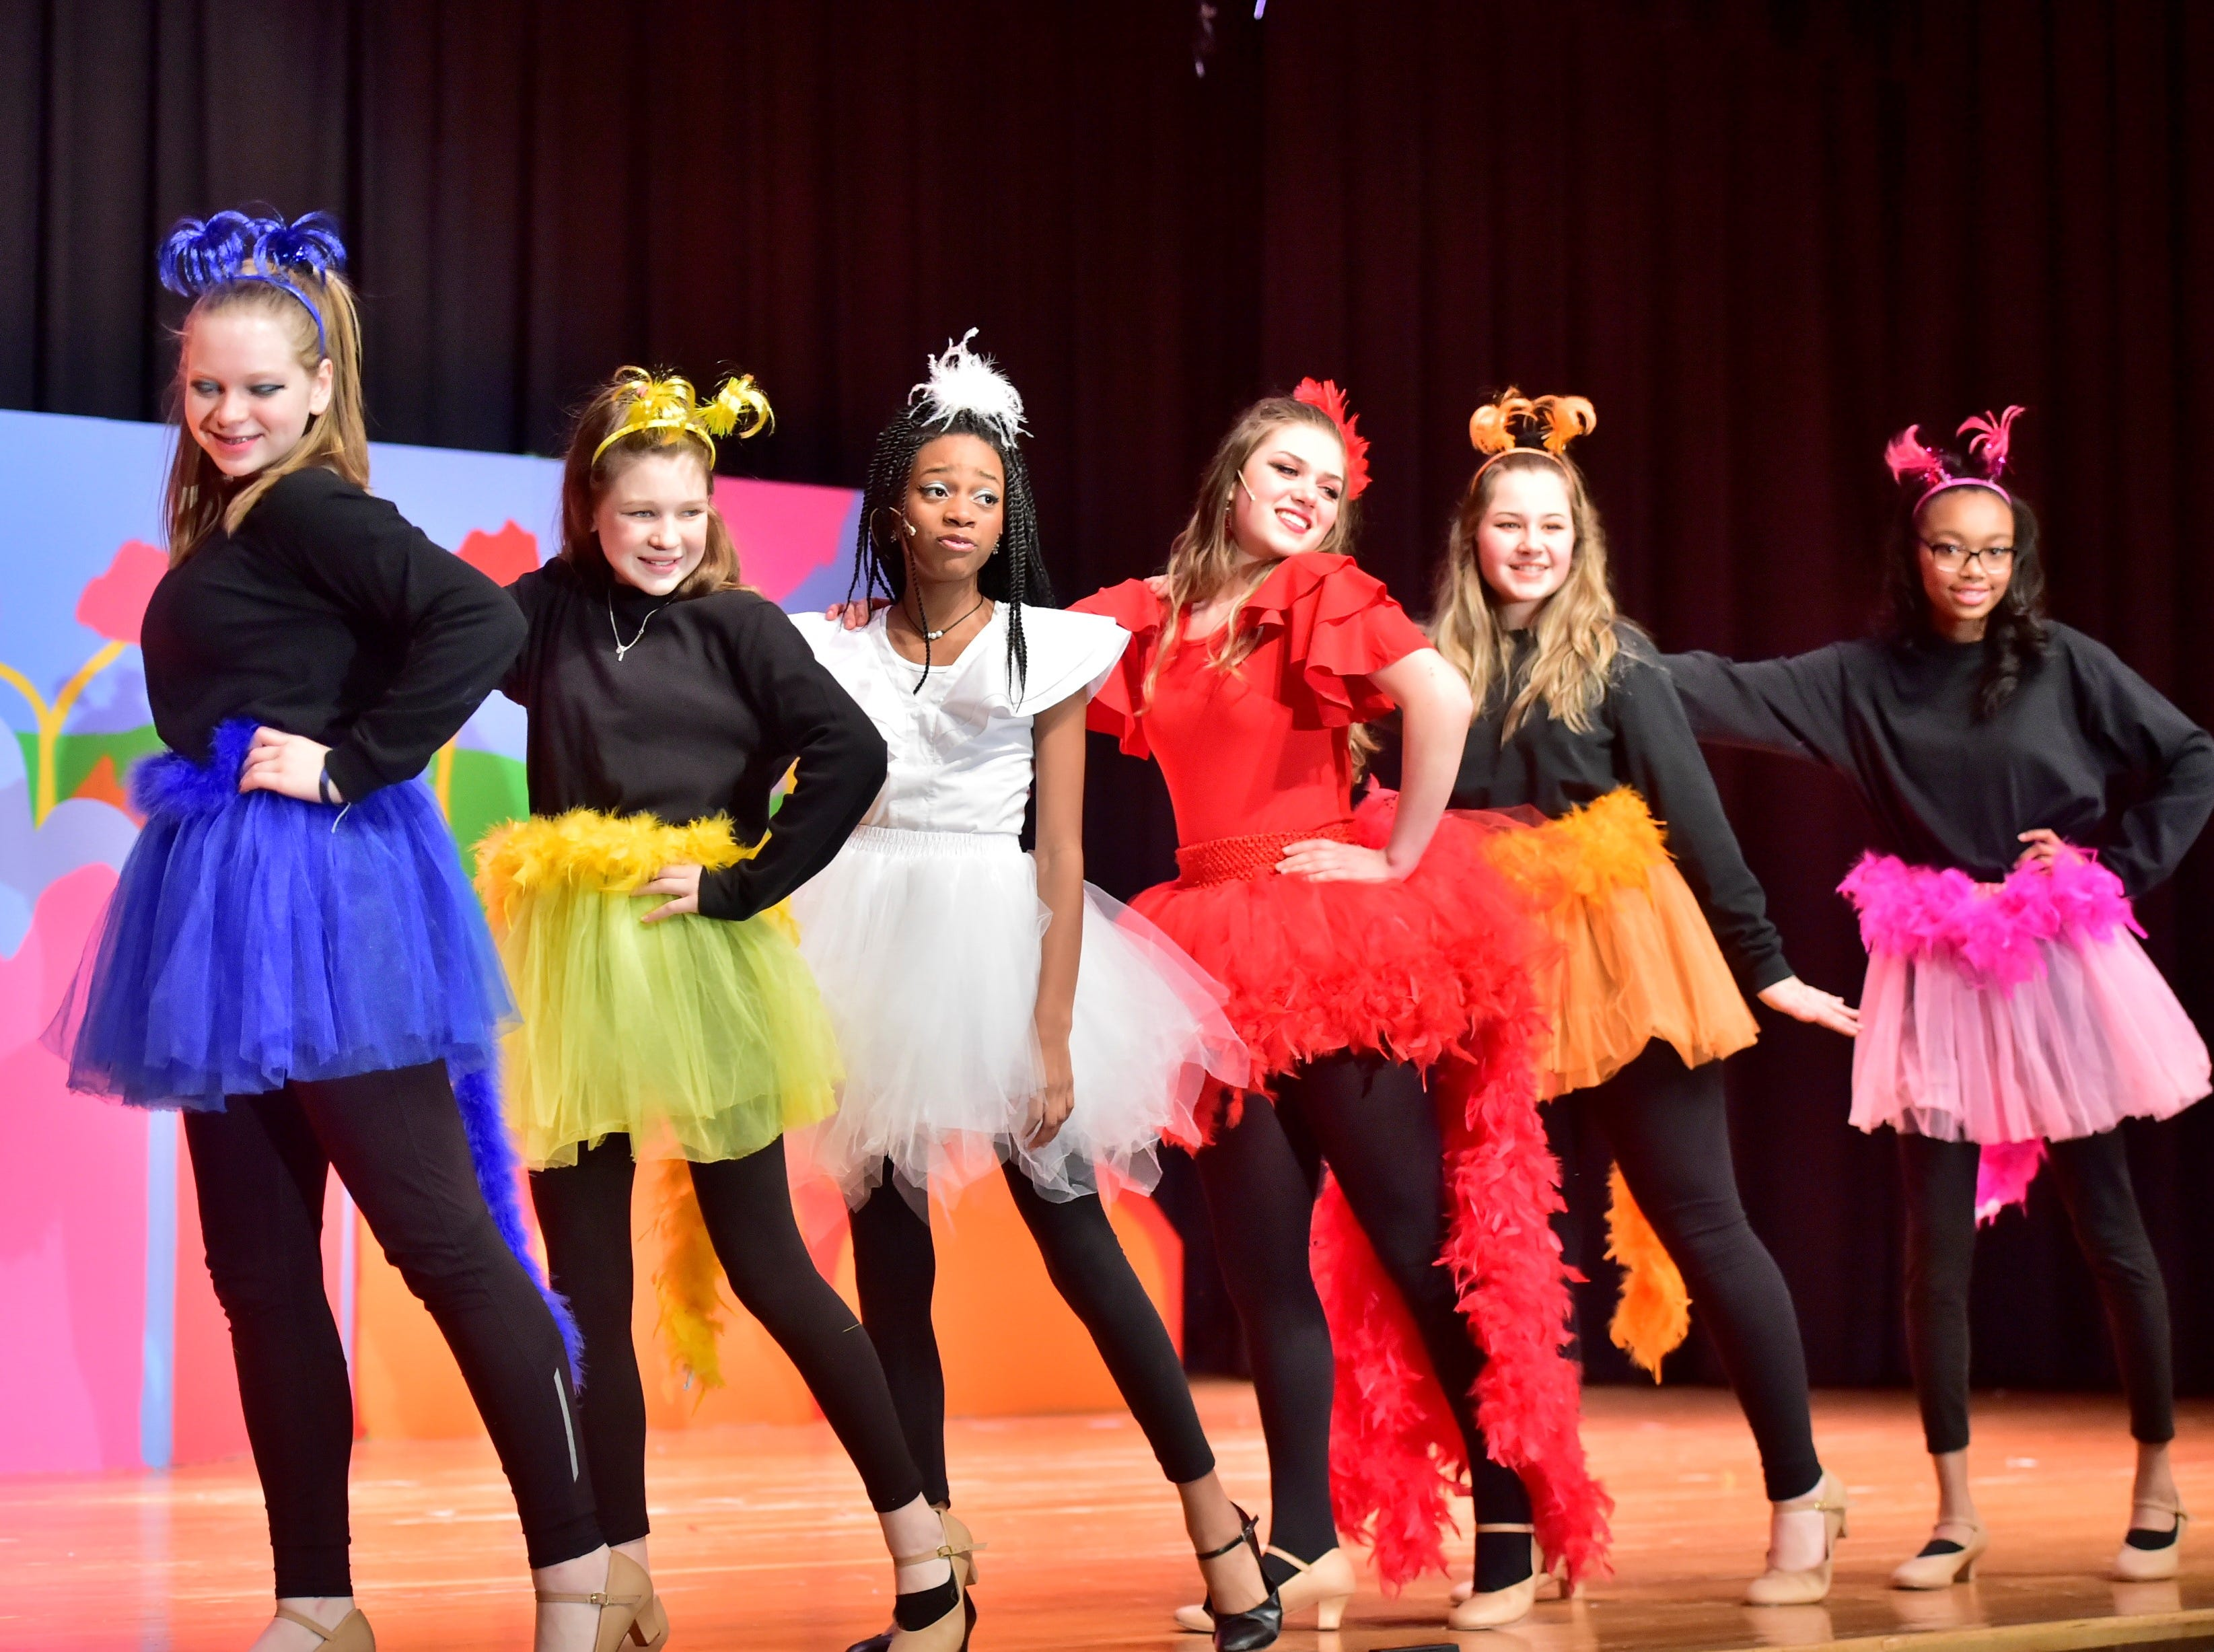 "The Bird Girls, alongside Gertrude McFuzz and Amazing Mayzie, perform a dance during a dress rehearsal for ""Seussical Jr."" on Feb. 19, 2019. Pictured are, from left: Caroline Dagnes, Zoe Ward, Jayla Womack, Zoey Wolfe, Alexis Coffey and Laila Douglas. Chambersburg Area Middle School South Drama Club will present the production at 7 p.m. Friday and Saturday, Feb. 22 and 23, and 2 p.m. Saturday and Sunday, Feb. 23 and 24, in the CAMS South auditorium. For tickets, $8, go to www.showtix4u.com and look up CAMS South Seussical."